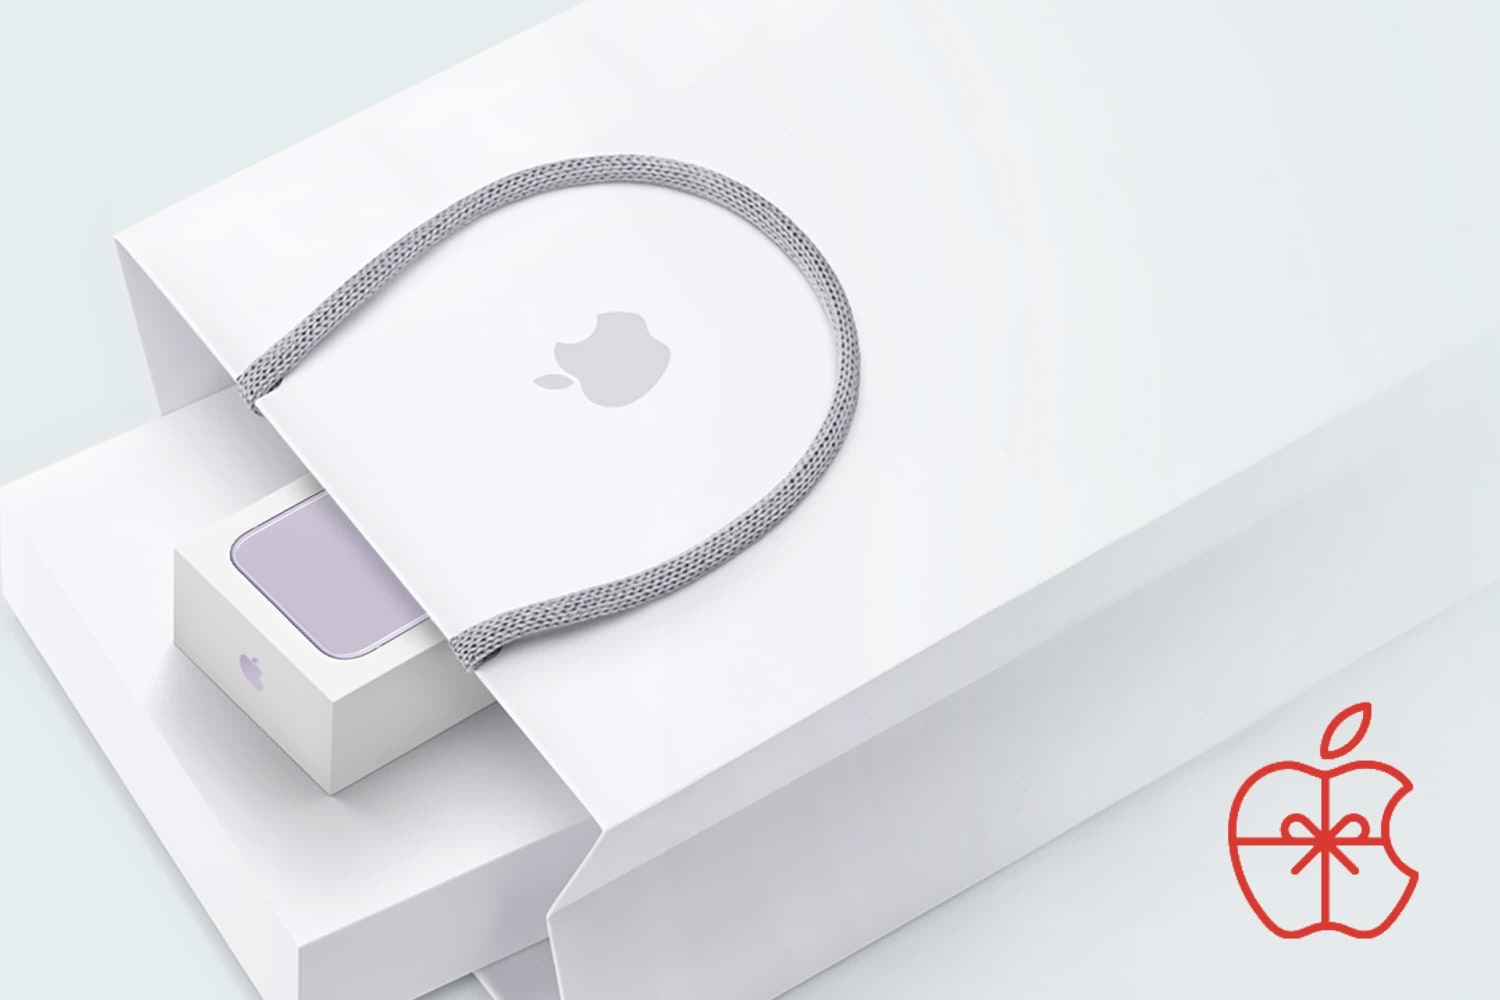 apple-announces-deadlines-for-holiday-orders-20201201-1